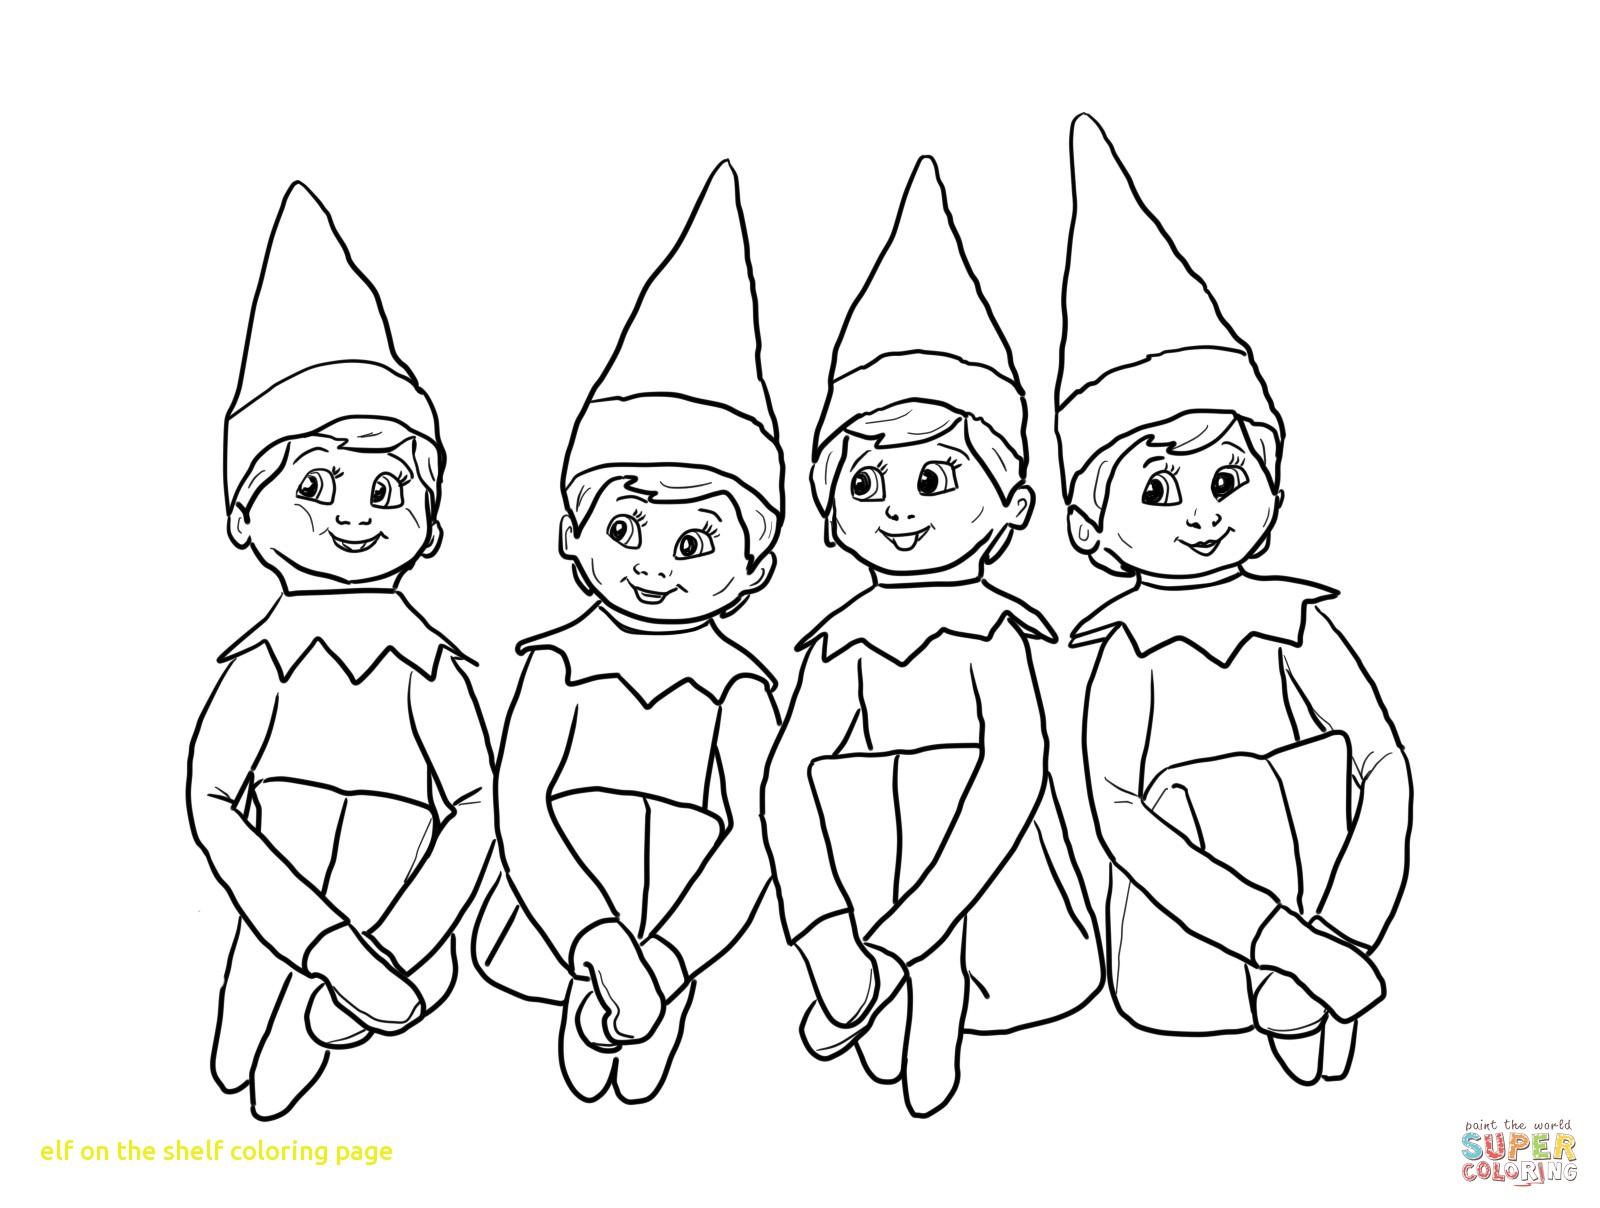 1600x1208 Elf On The Shelf Coloring Pages For Kids General Free To Book